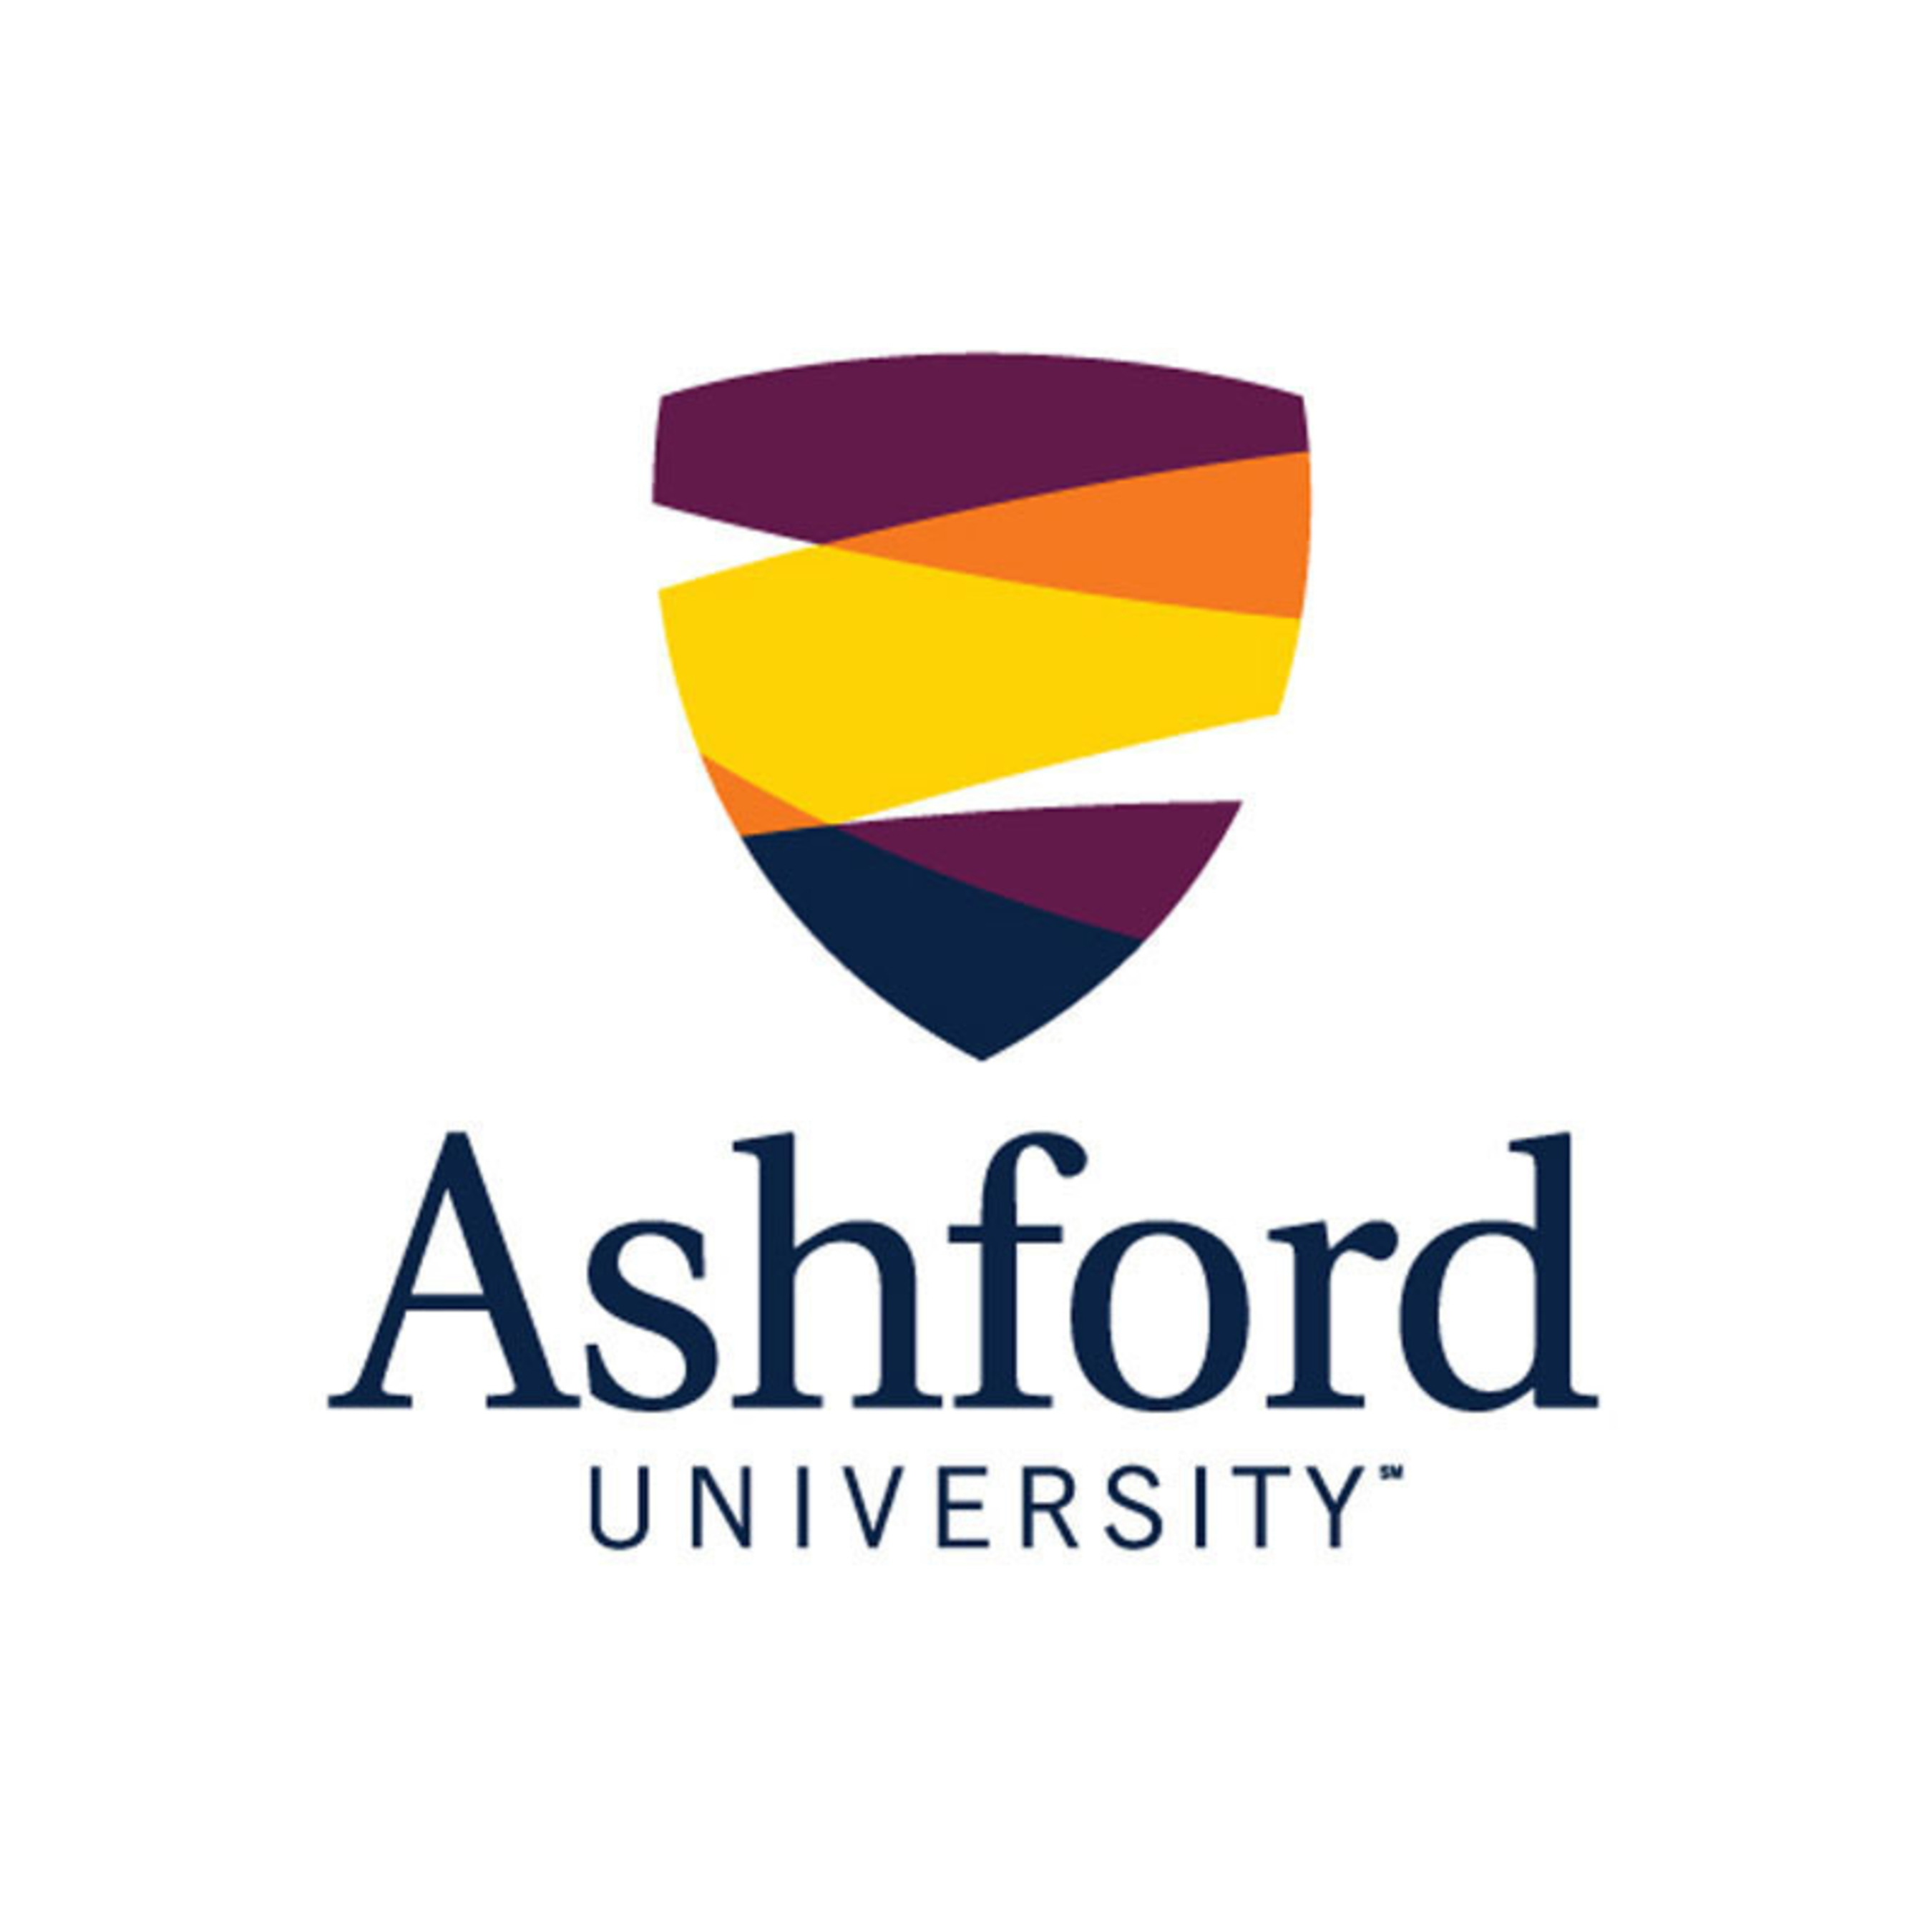 ashford university Changing lives : ashford university helps people change their lives through education to make that possible, we focus on three ideas.